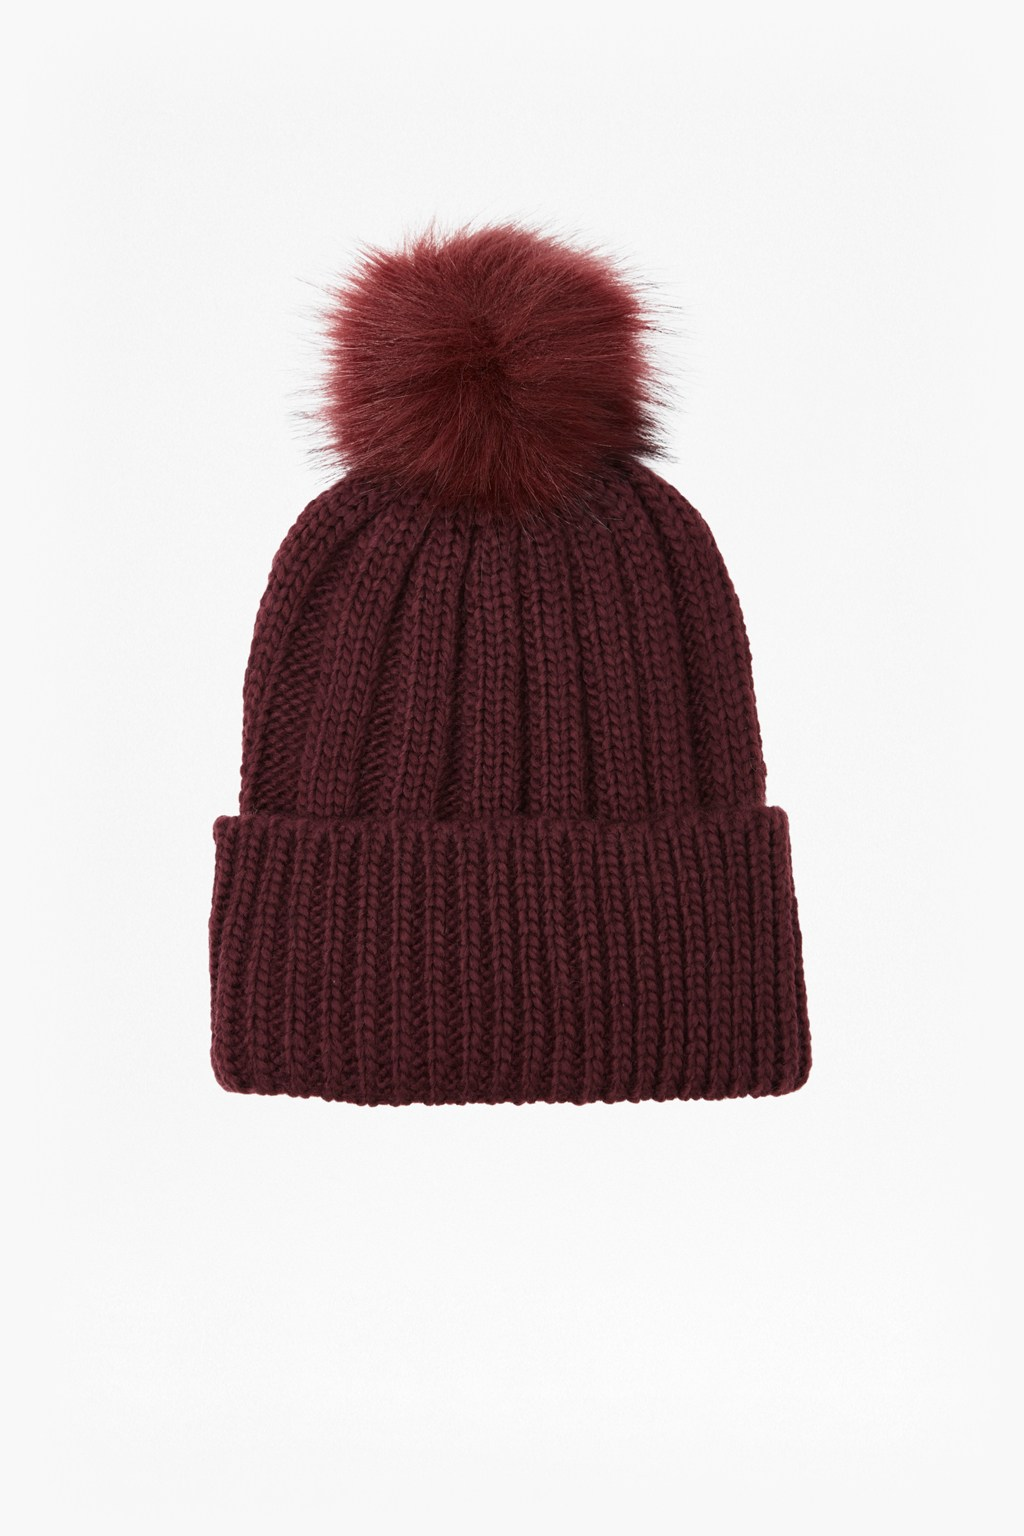 5acd48505be Pom Pom Beanie Hat. loading images.